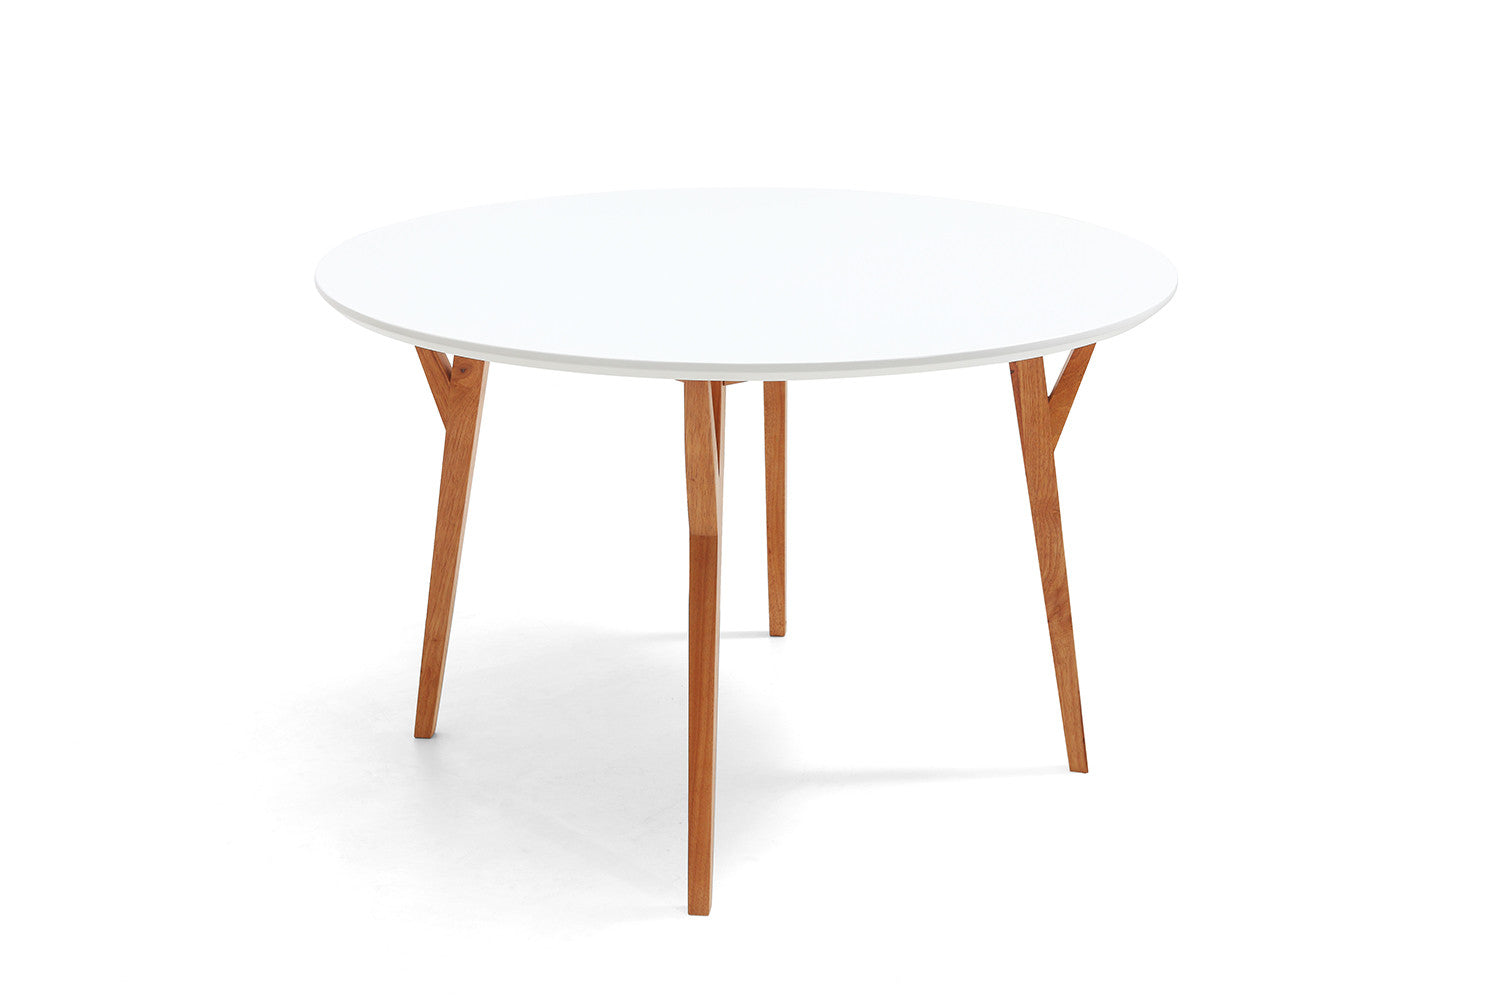 Table de salle manger ronde design scandinave moesa for Table a manger suedoise